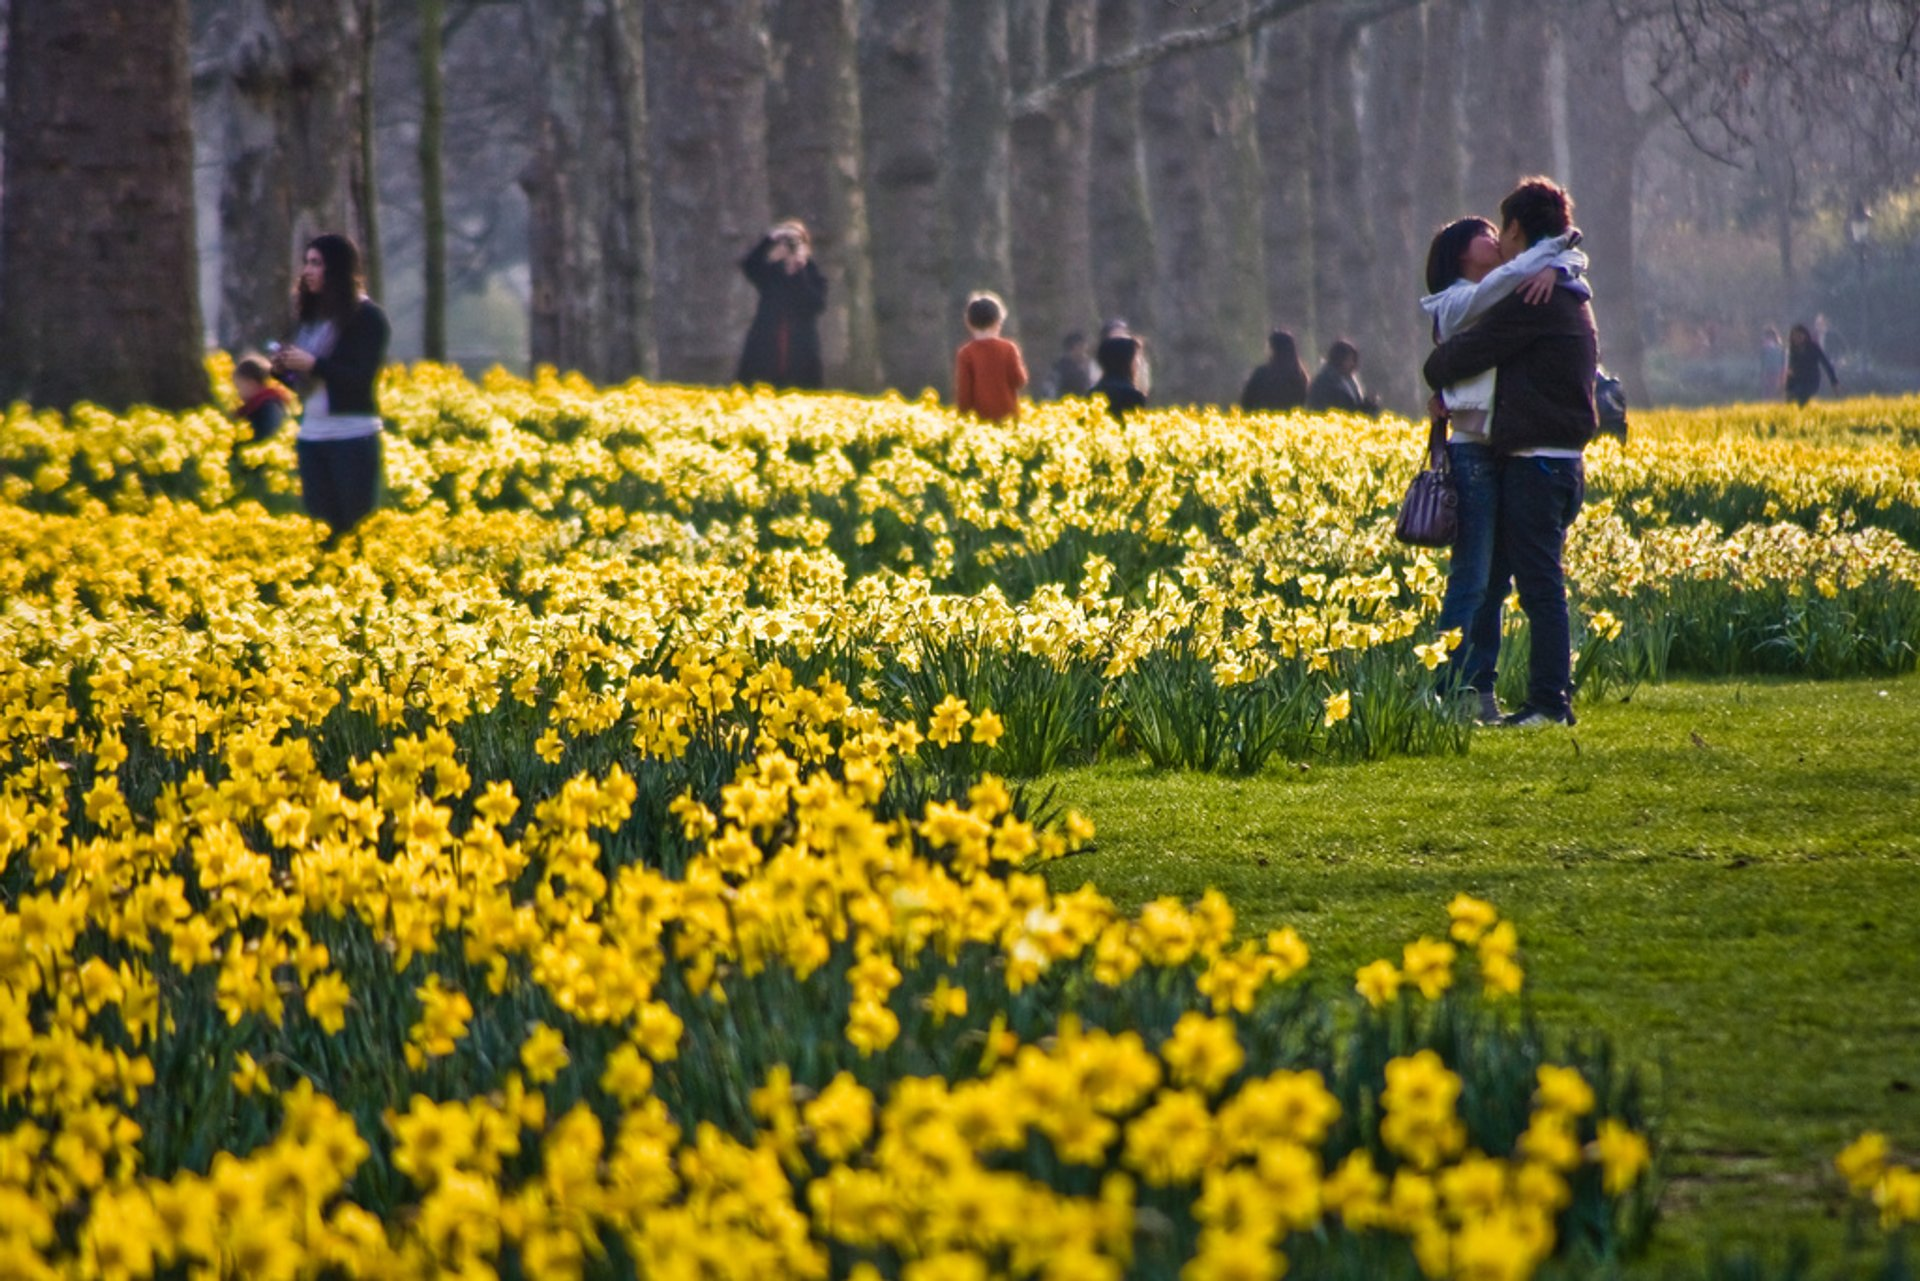 Daffodils in St James's Park 2020